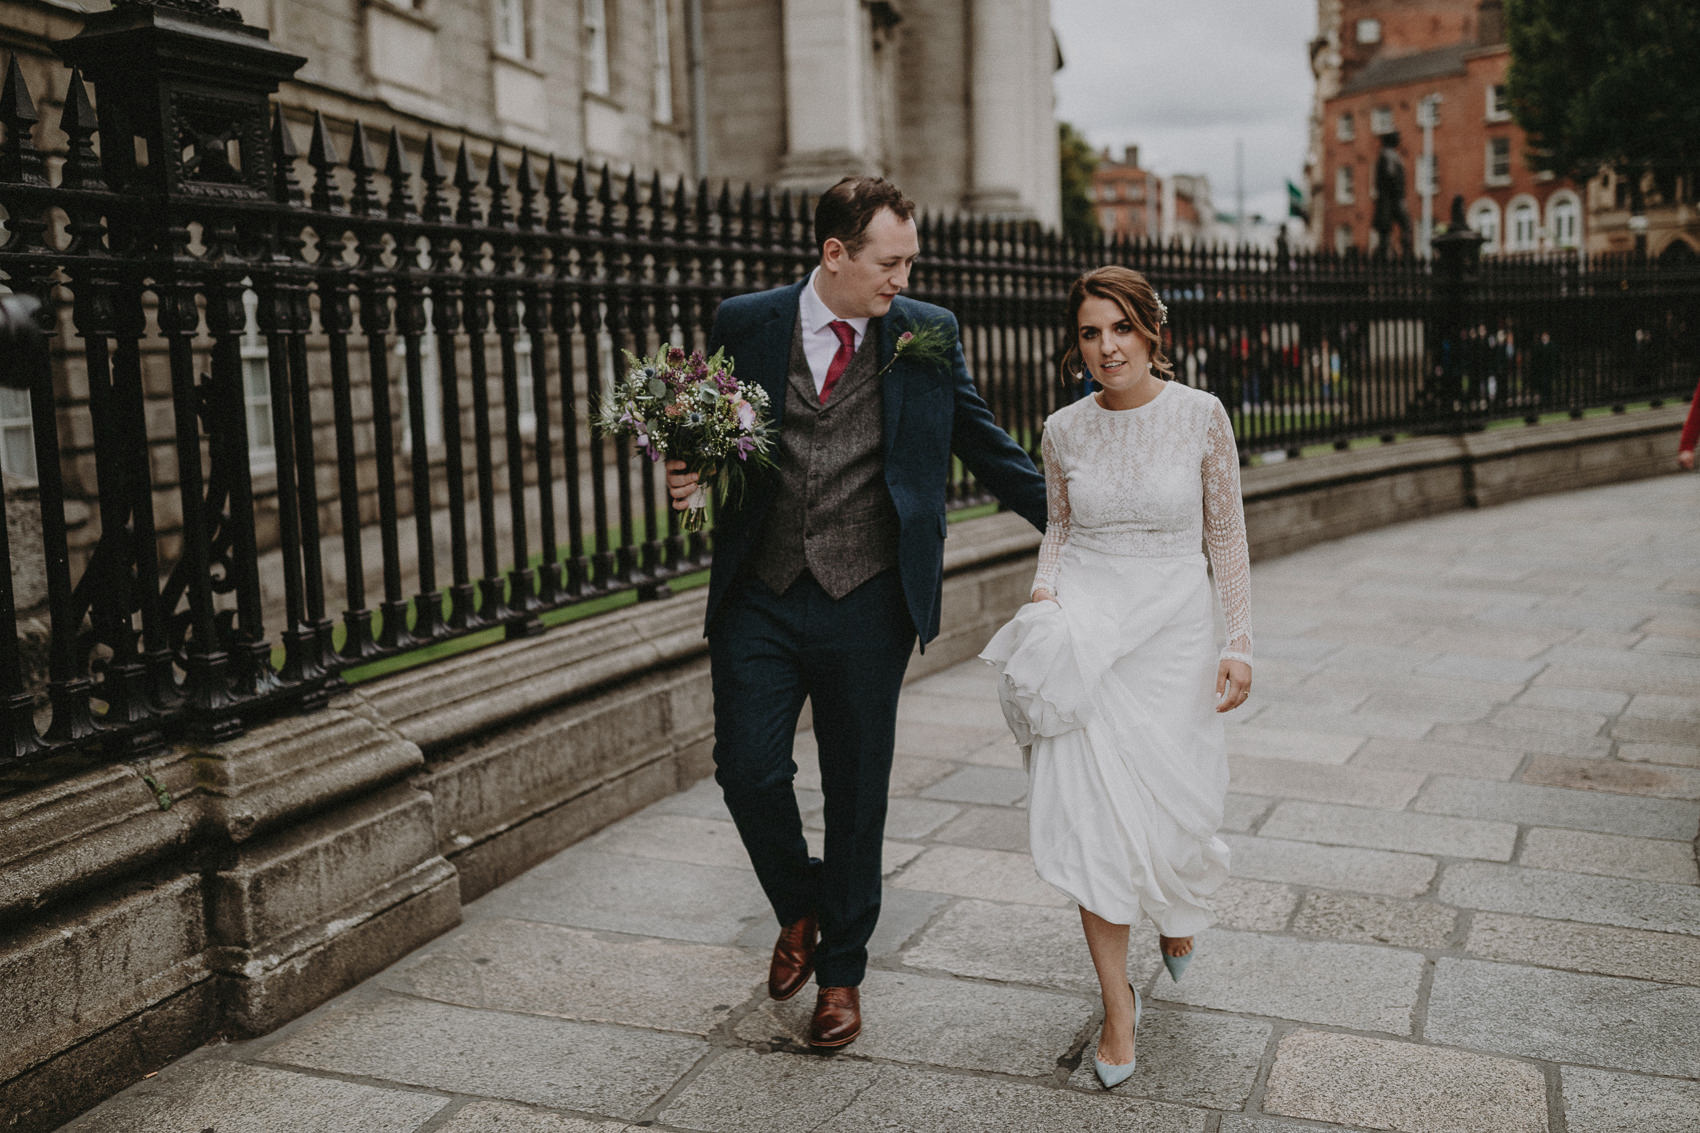 Jessica & Vincent wedding at Martinstown House 66